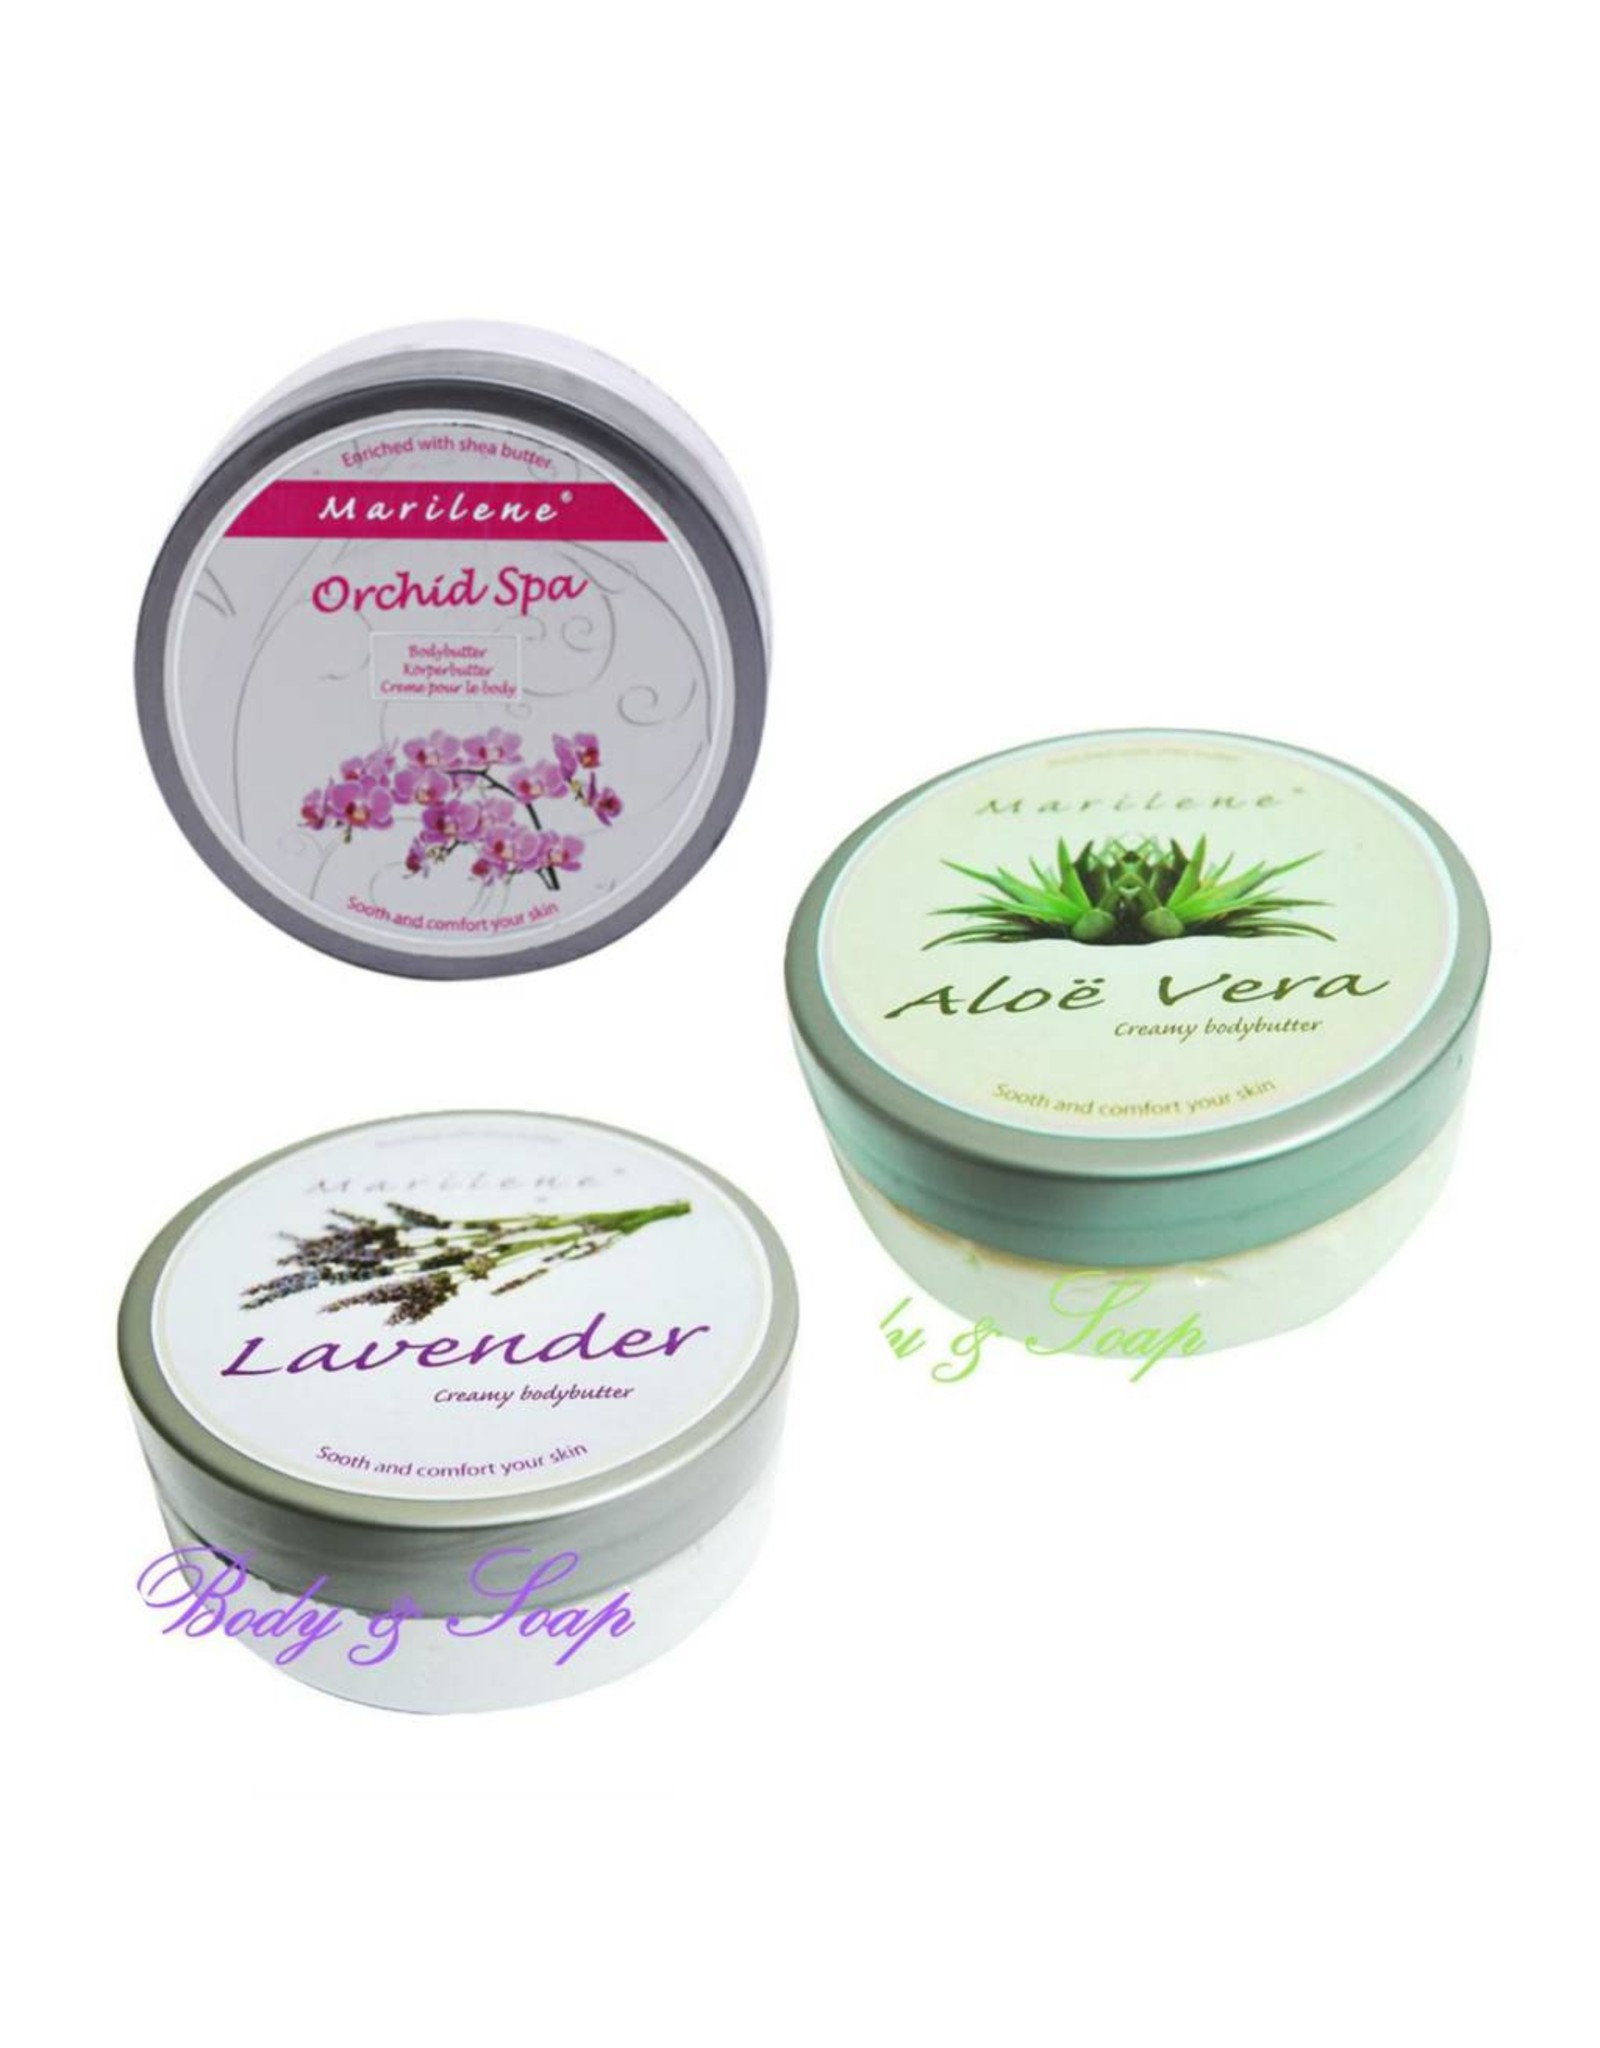 Body Butter 'Lavendel' - Body & Soap